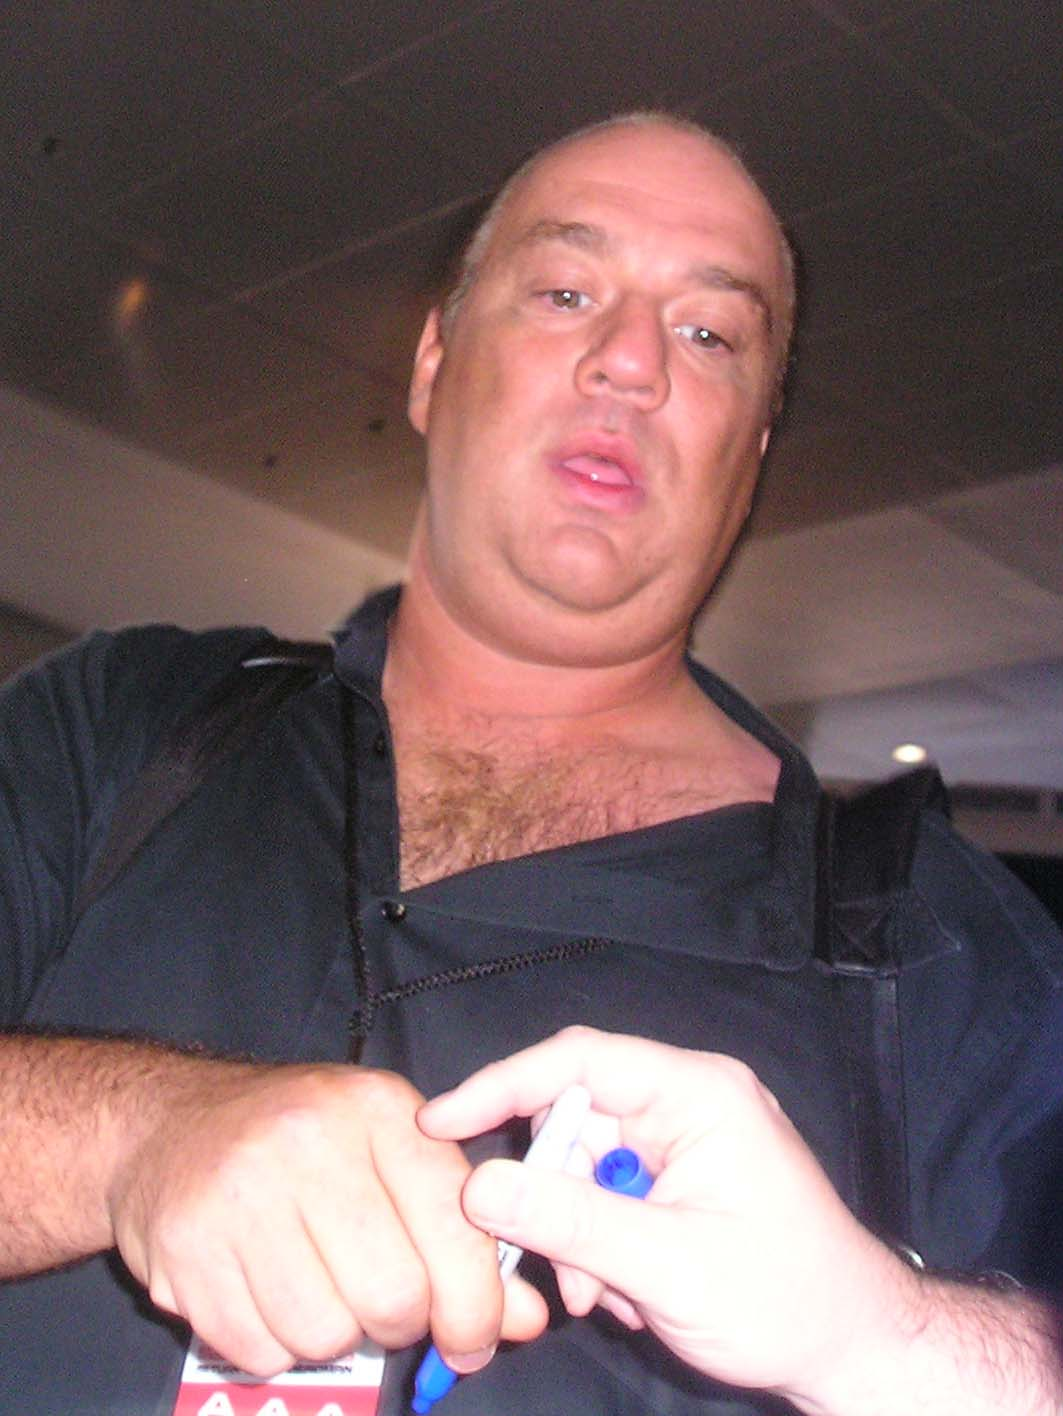 Image of Paul Heyman from Wikidata